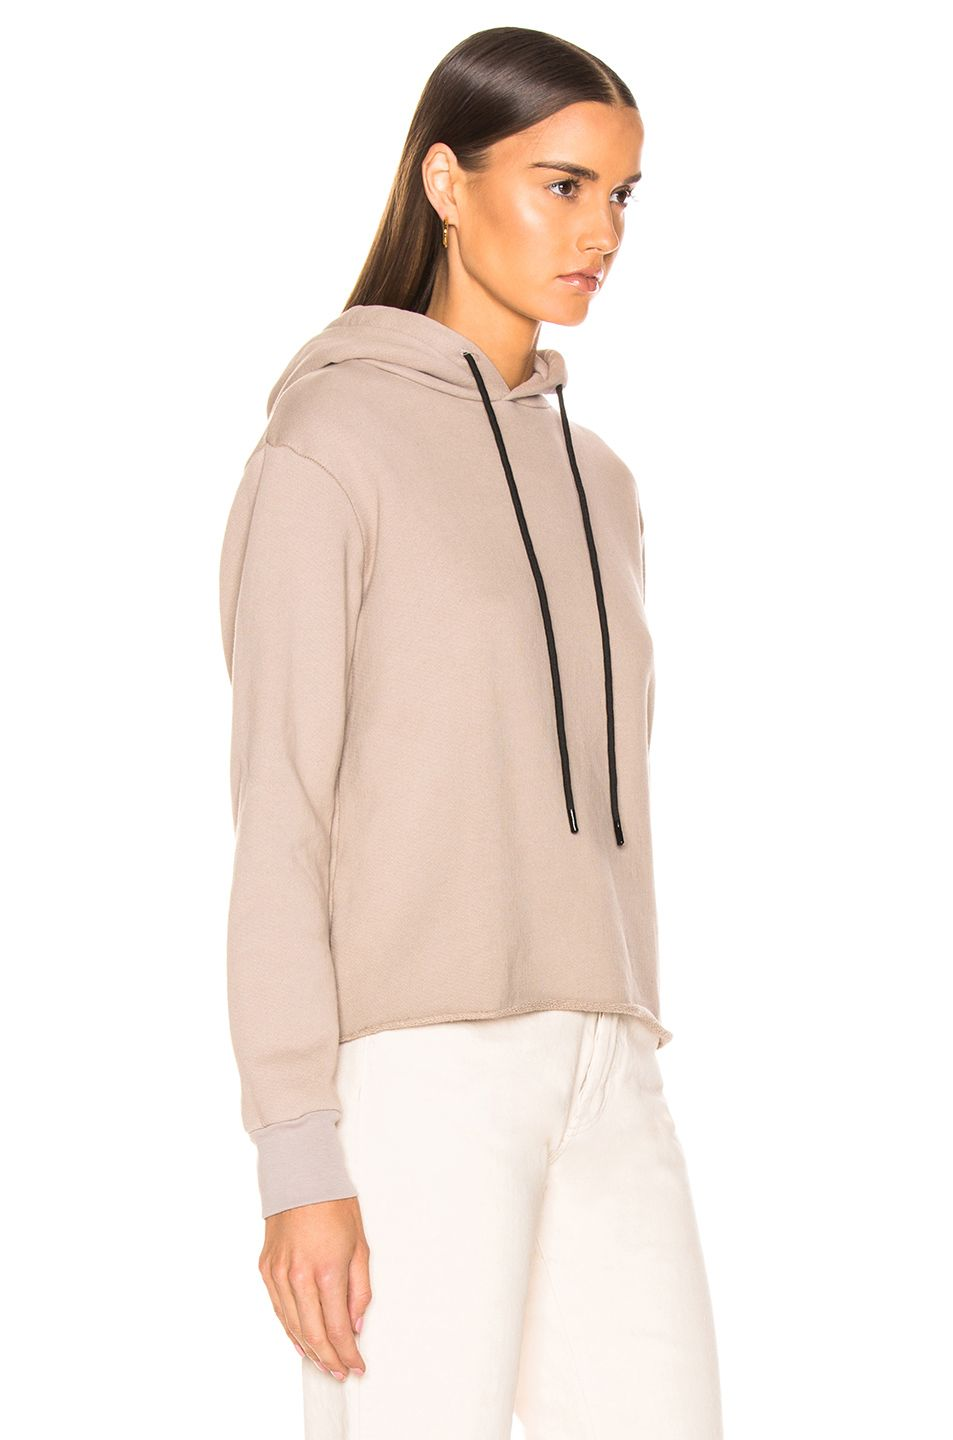 66078eefd Image 2 of COTTON CITIZEN Brooklyn Hoodie in Cappuccino | Fall ...